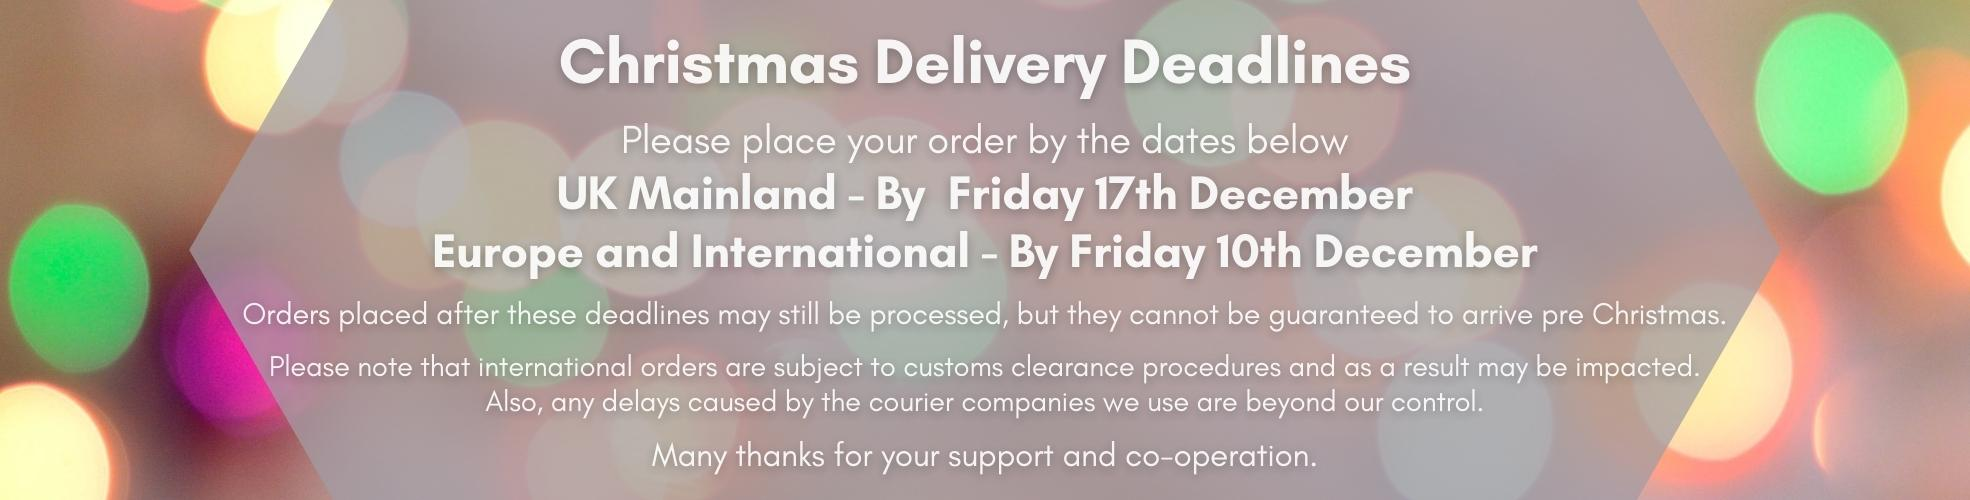 Christmas Deliveries Please place your orders online by dates below for delivery before Christmas. UK Mainland Customer - By 18th December Europe and International - By 14th December We will try our best to prepare them as quickly as possible and dispatch for delivery before Christmas. Any orders placed after these deadline dates may be delivered in the New Year.